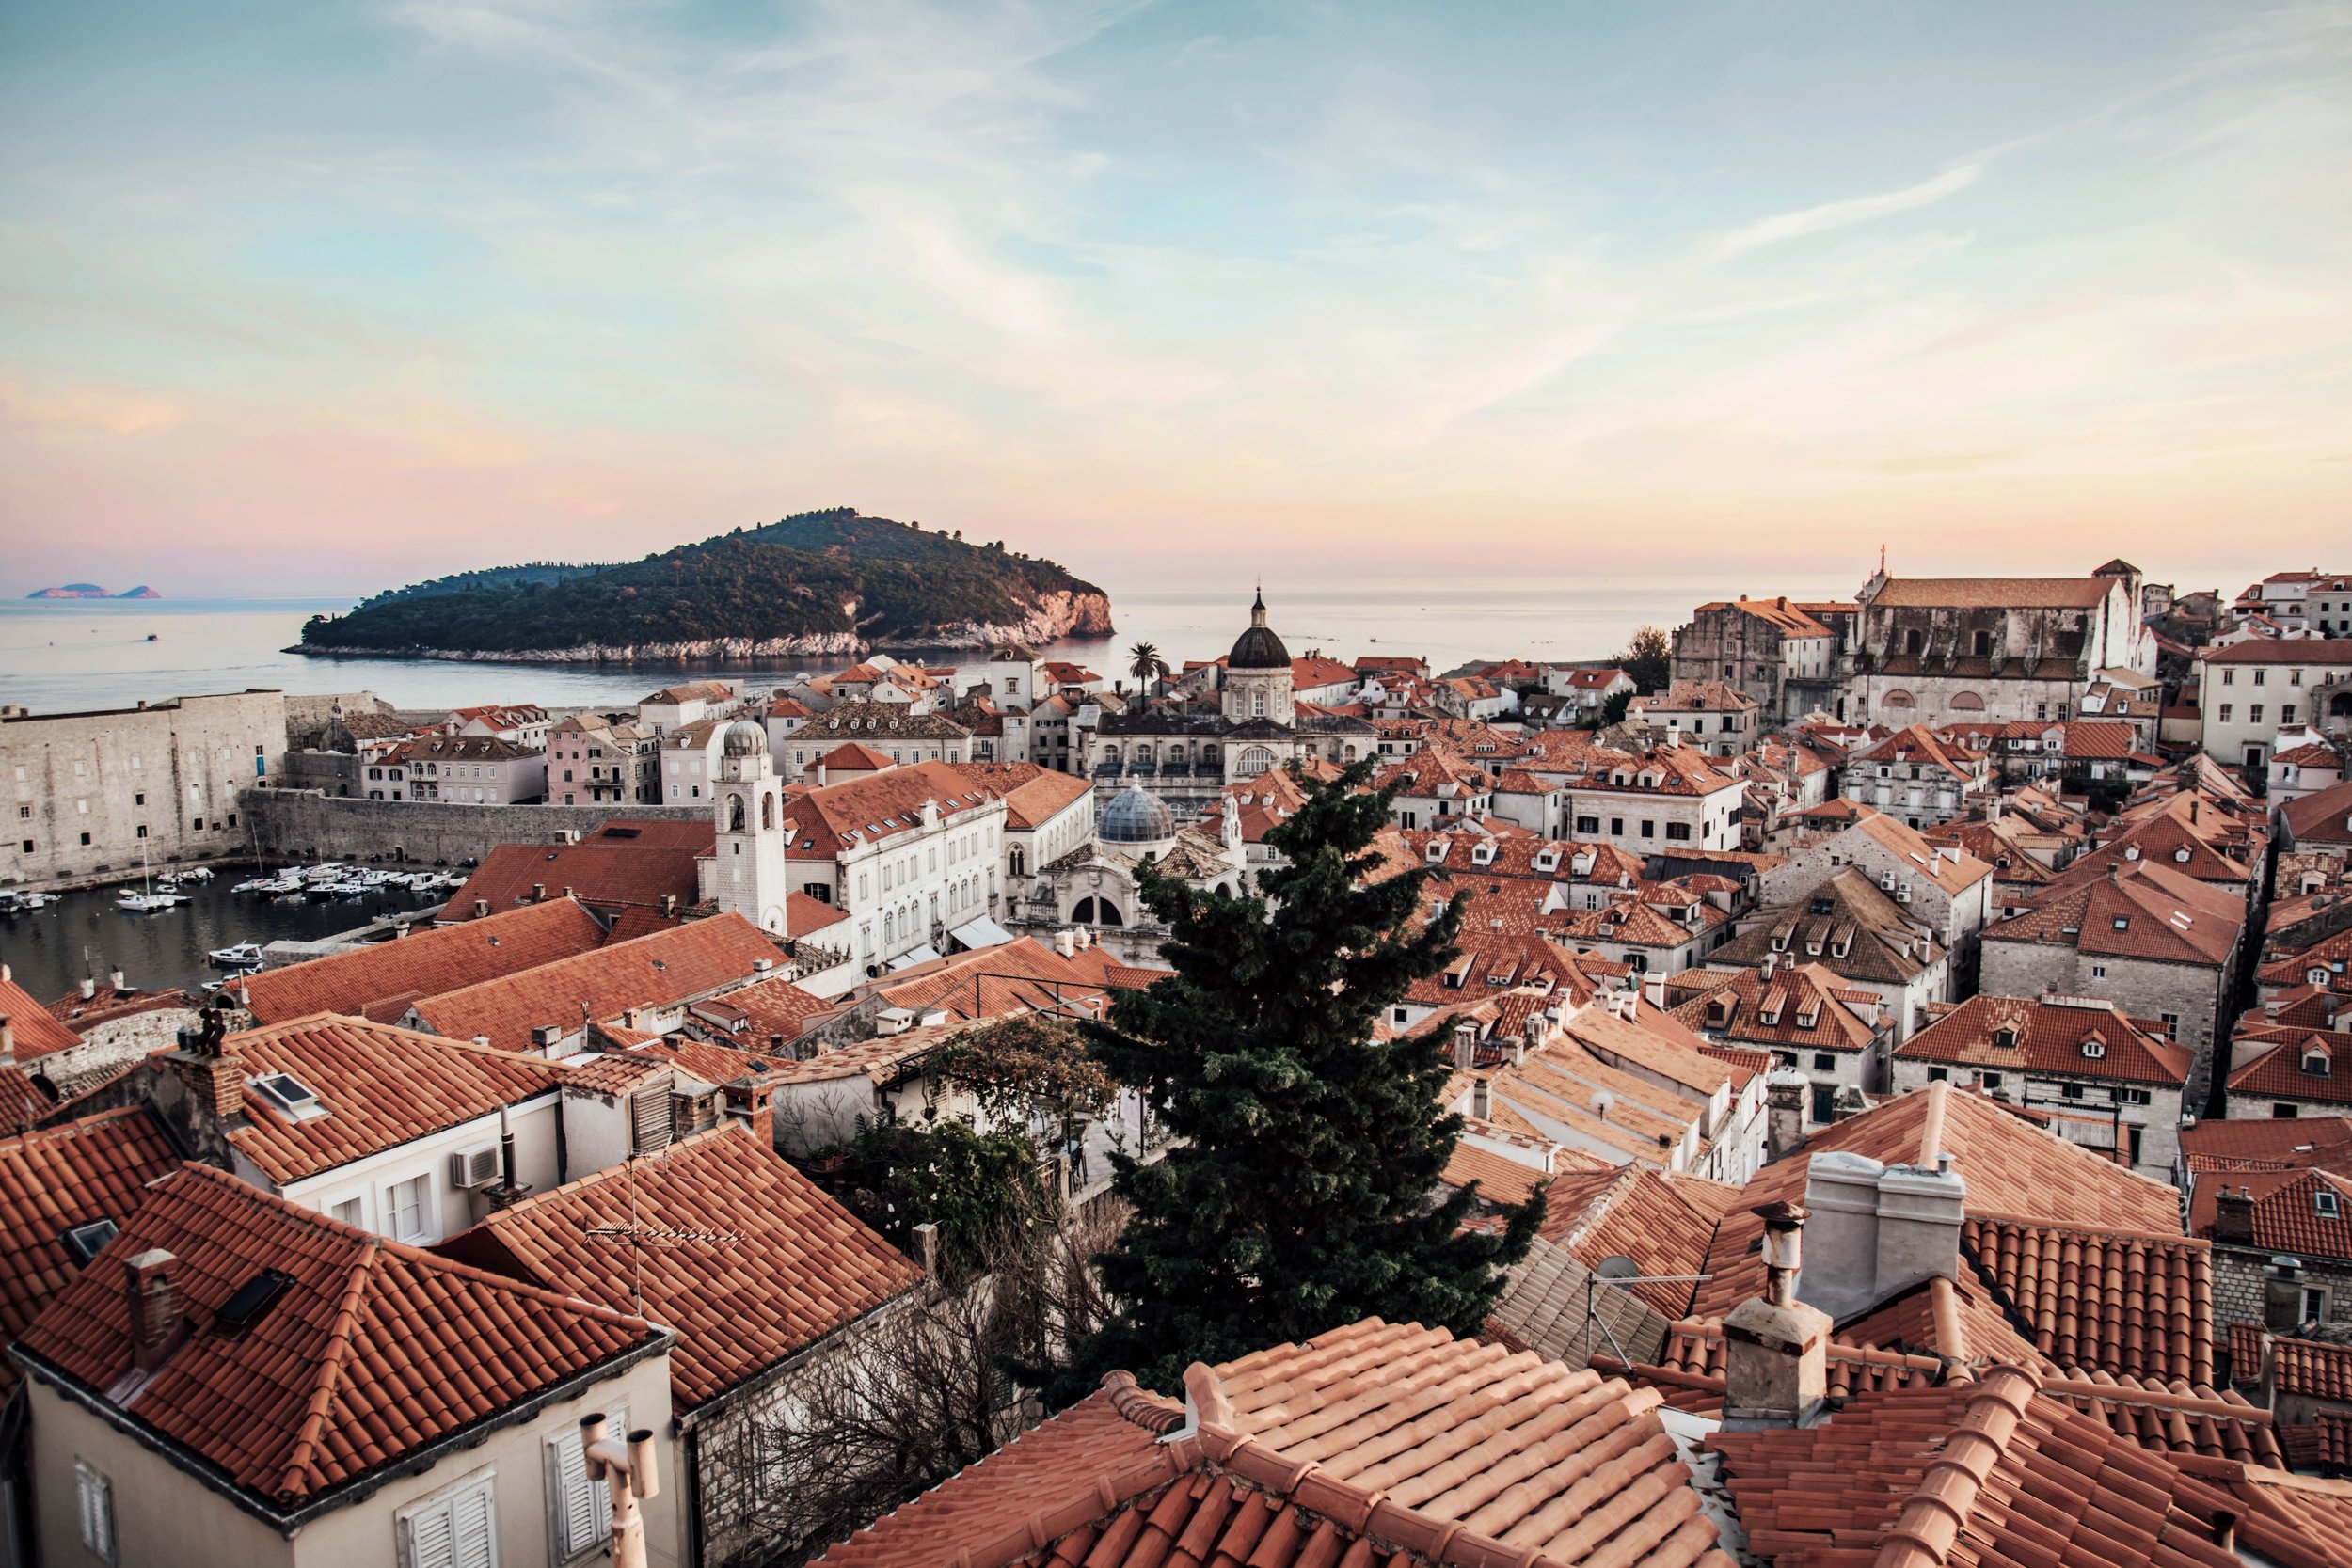 Travel_Photography_1_Dubrovnik-Croatia (1)-min.jpg